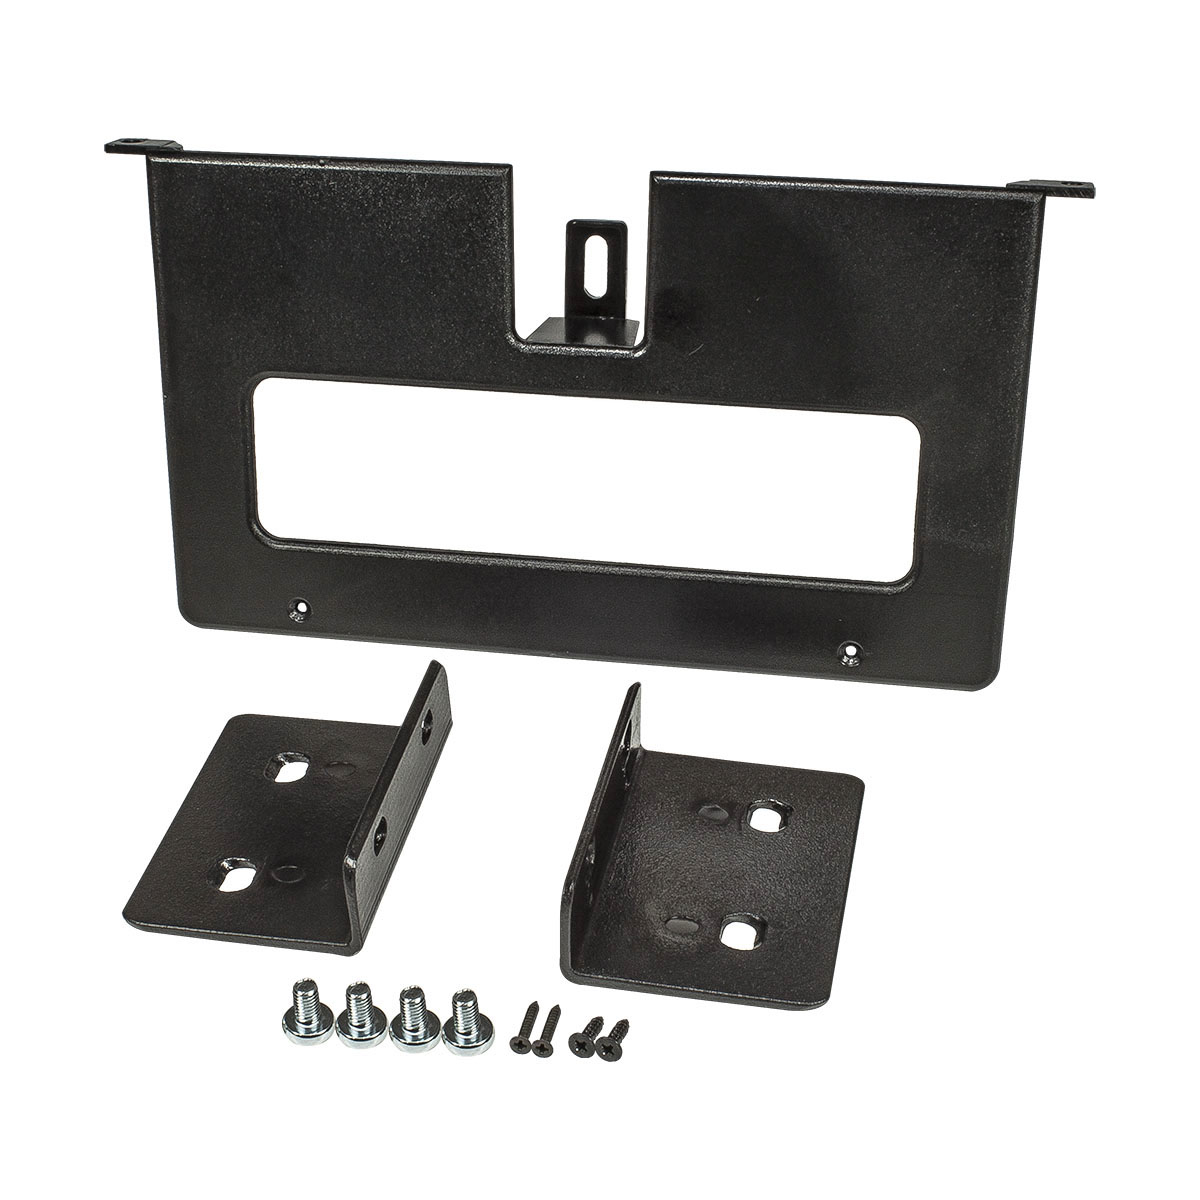 Universal Undercarriage Console Radio Holder For 2din Devices Car Lor